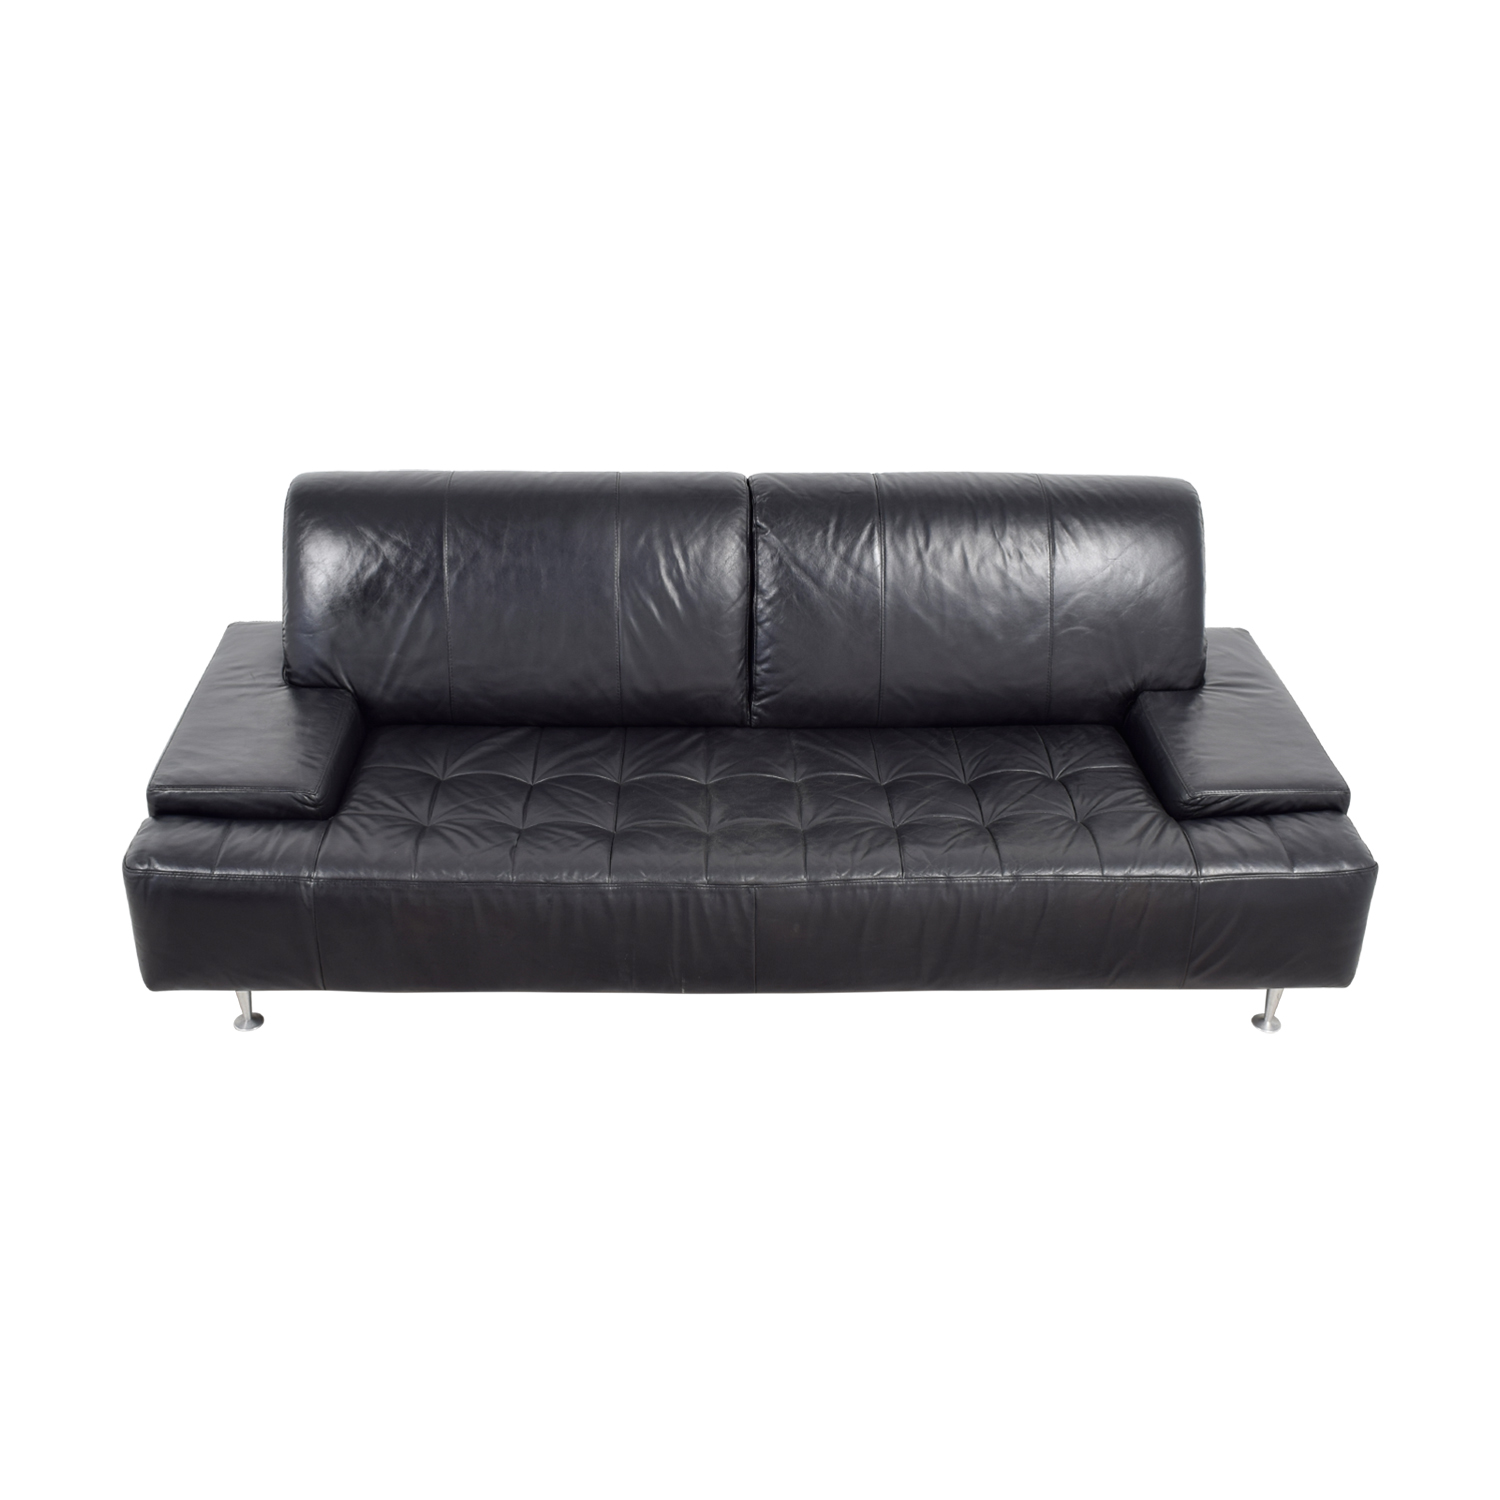 Black Leather Tufted Couch for sale